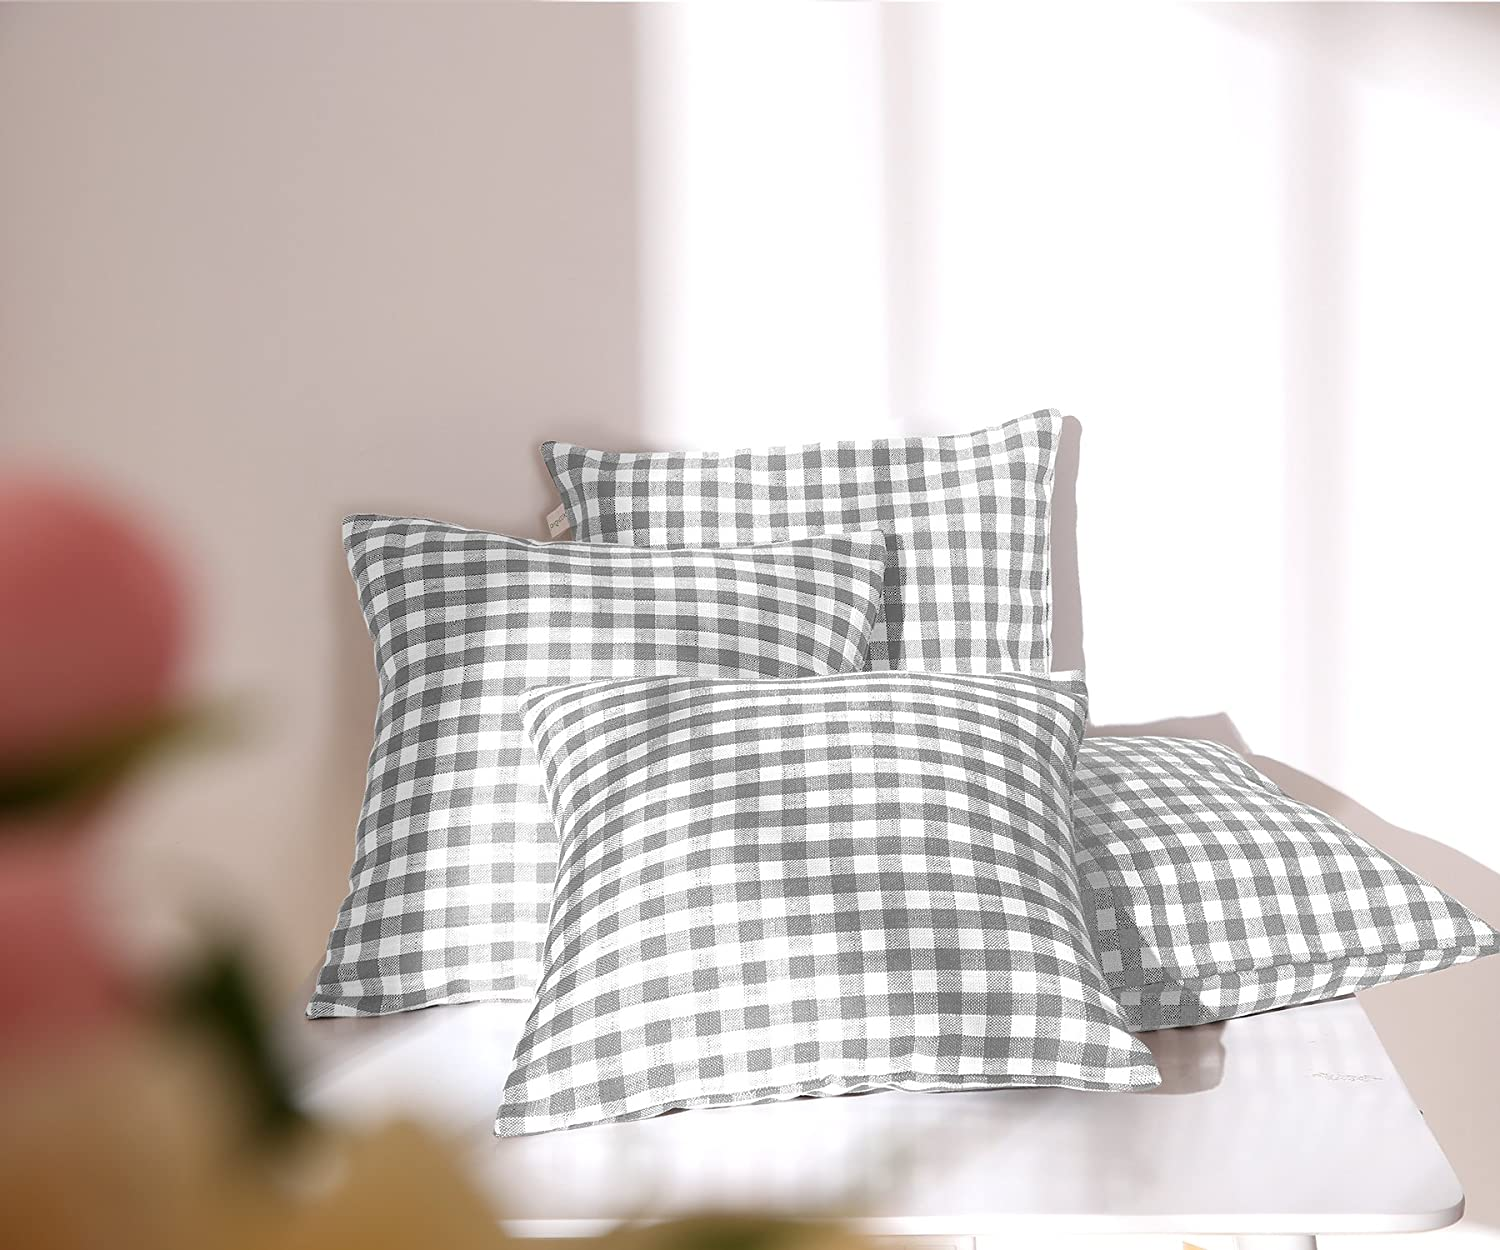 Deconovo Throw Home Decorative Grid Squares Faux Linen Plaid Cushion Shams Handmand Checkered Pillow Covers with Invisible Zipper, 18x18 Inch, Light Grey and White,4 Pcs